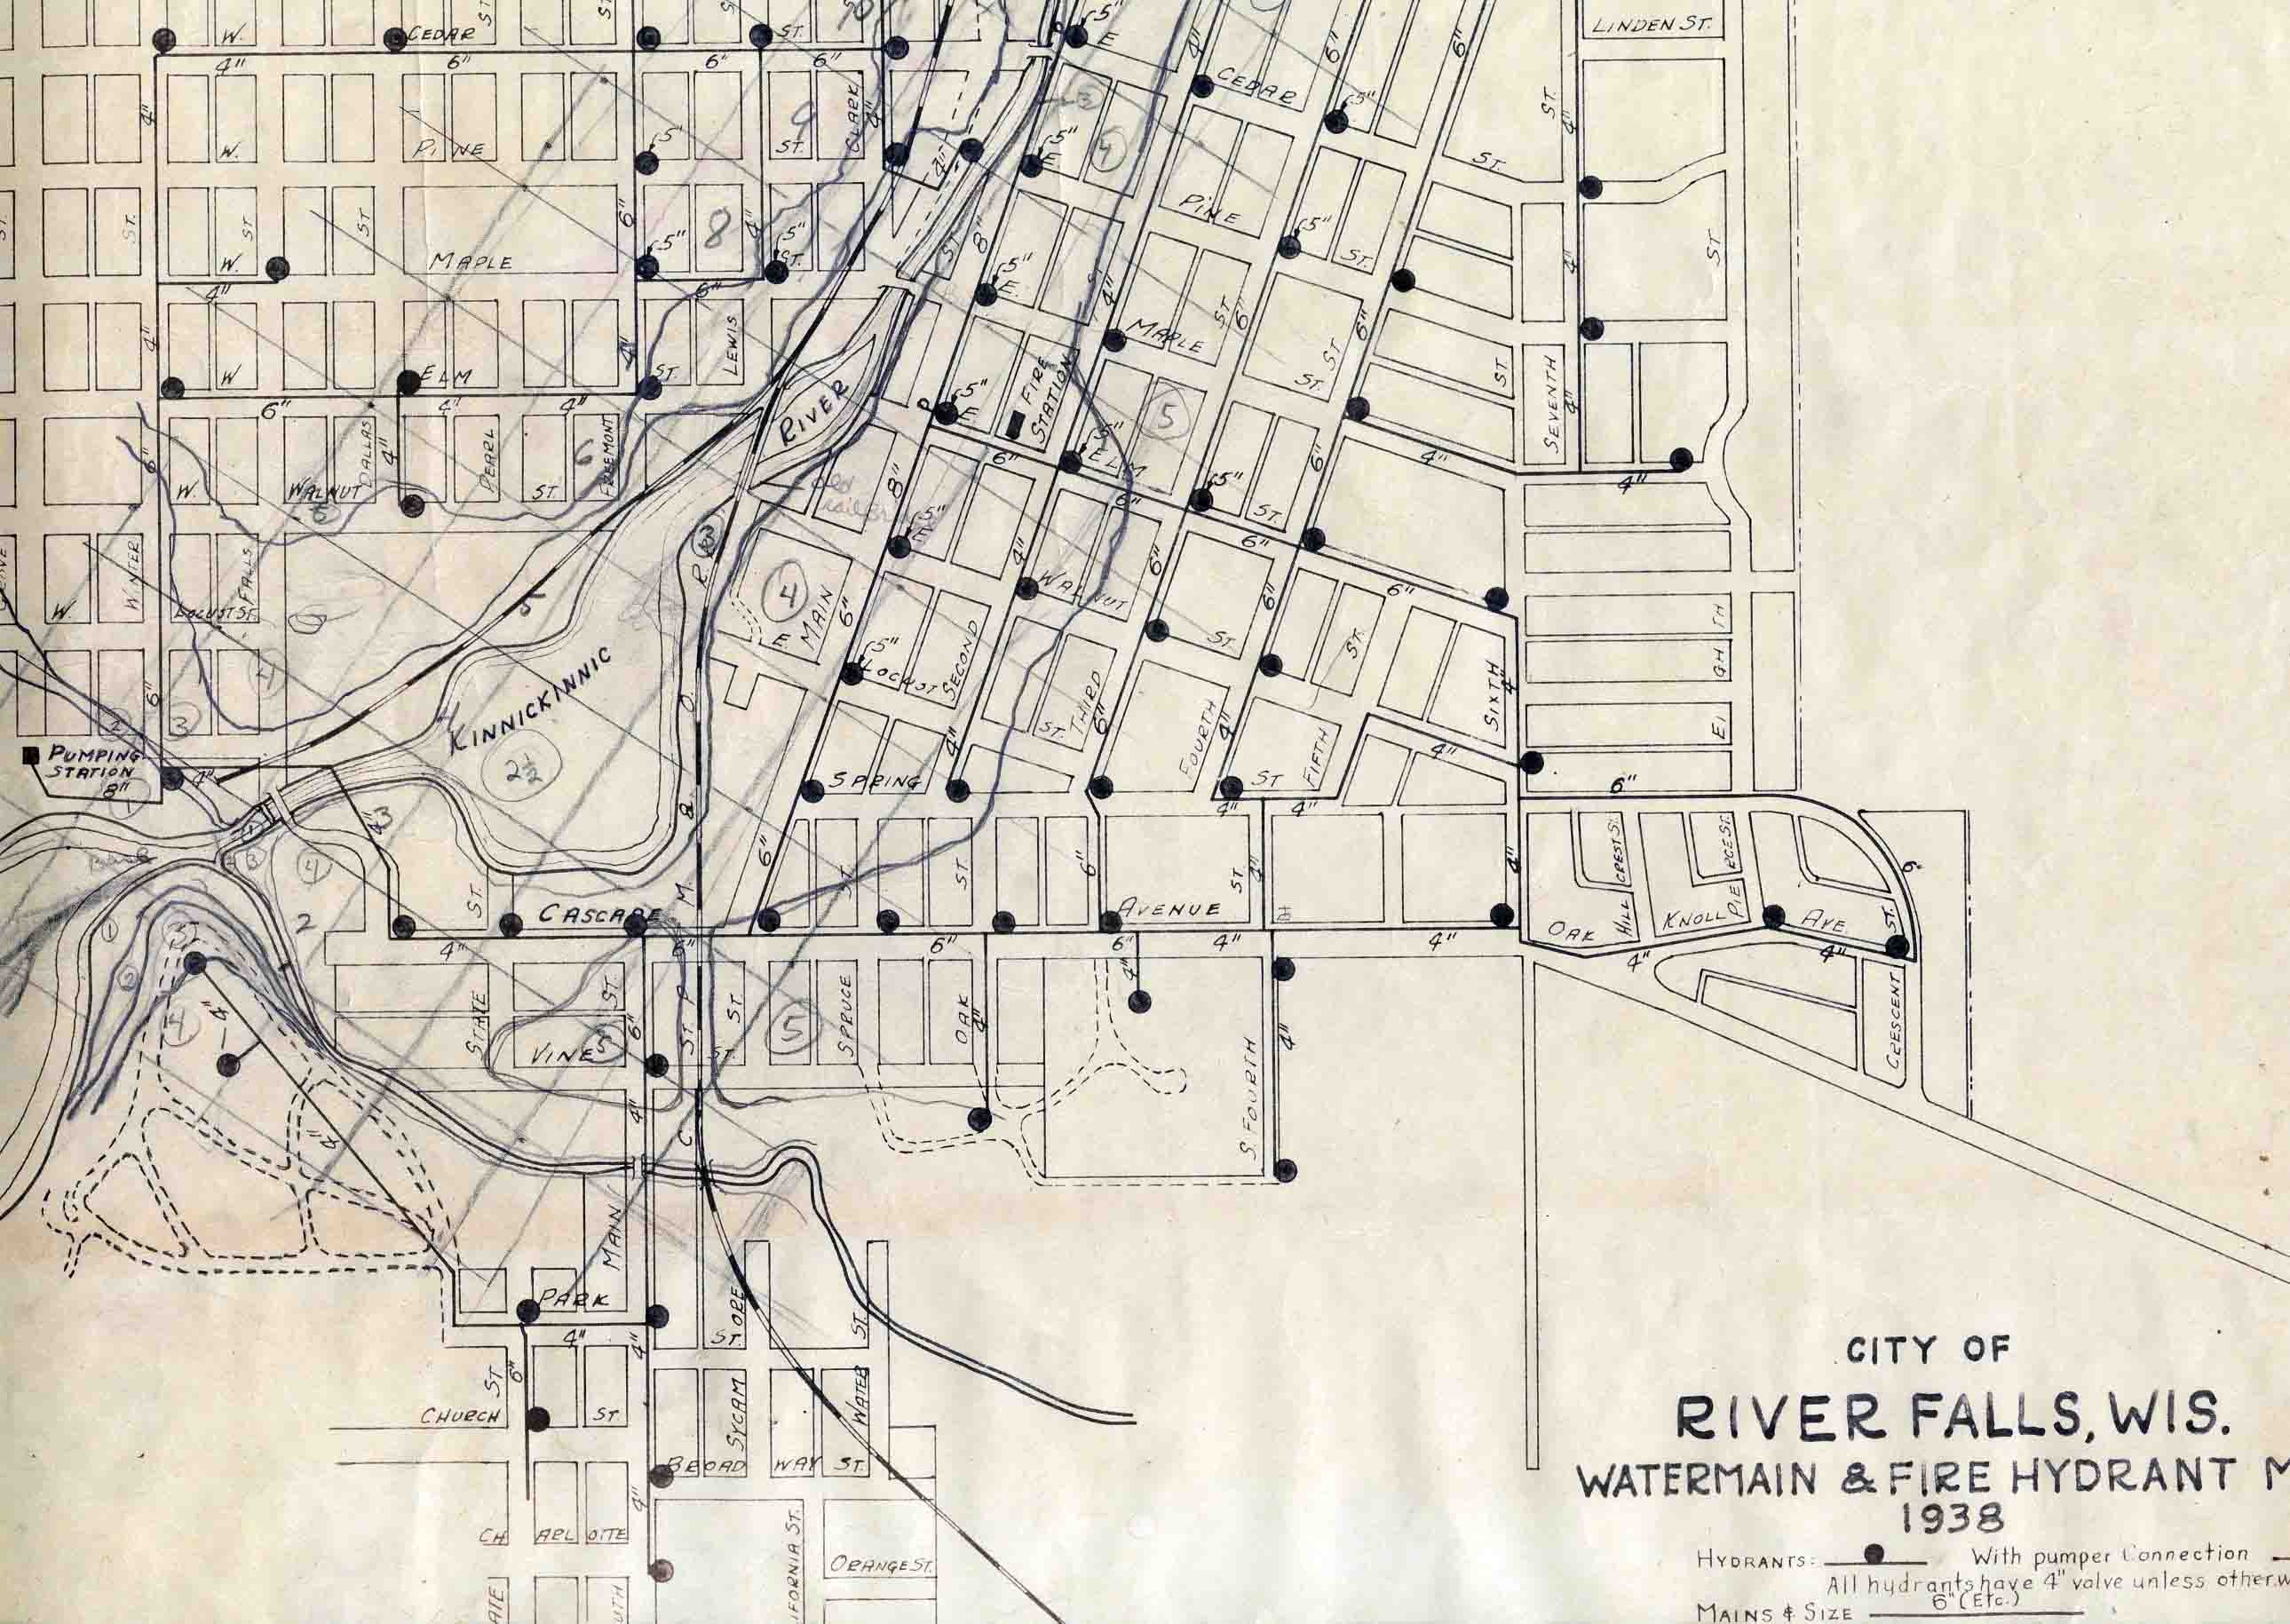 1938 Map of River Falls watermains and fire hydrants